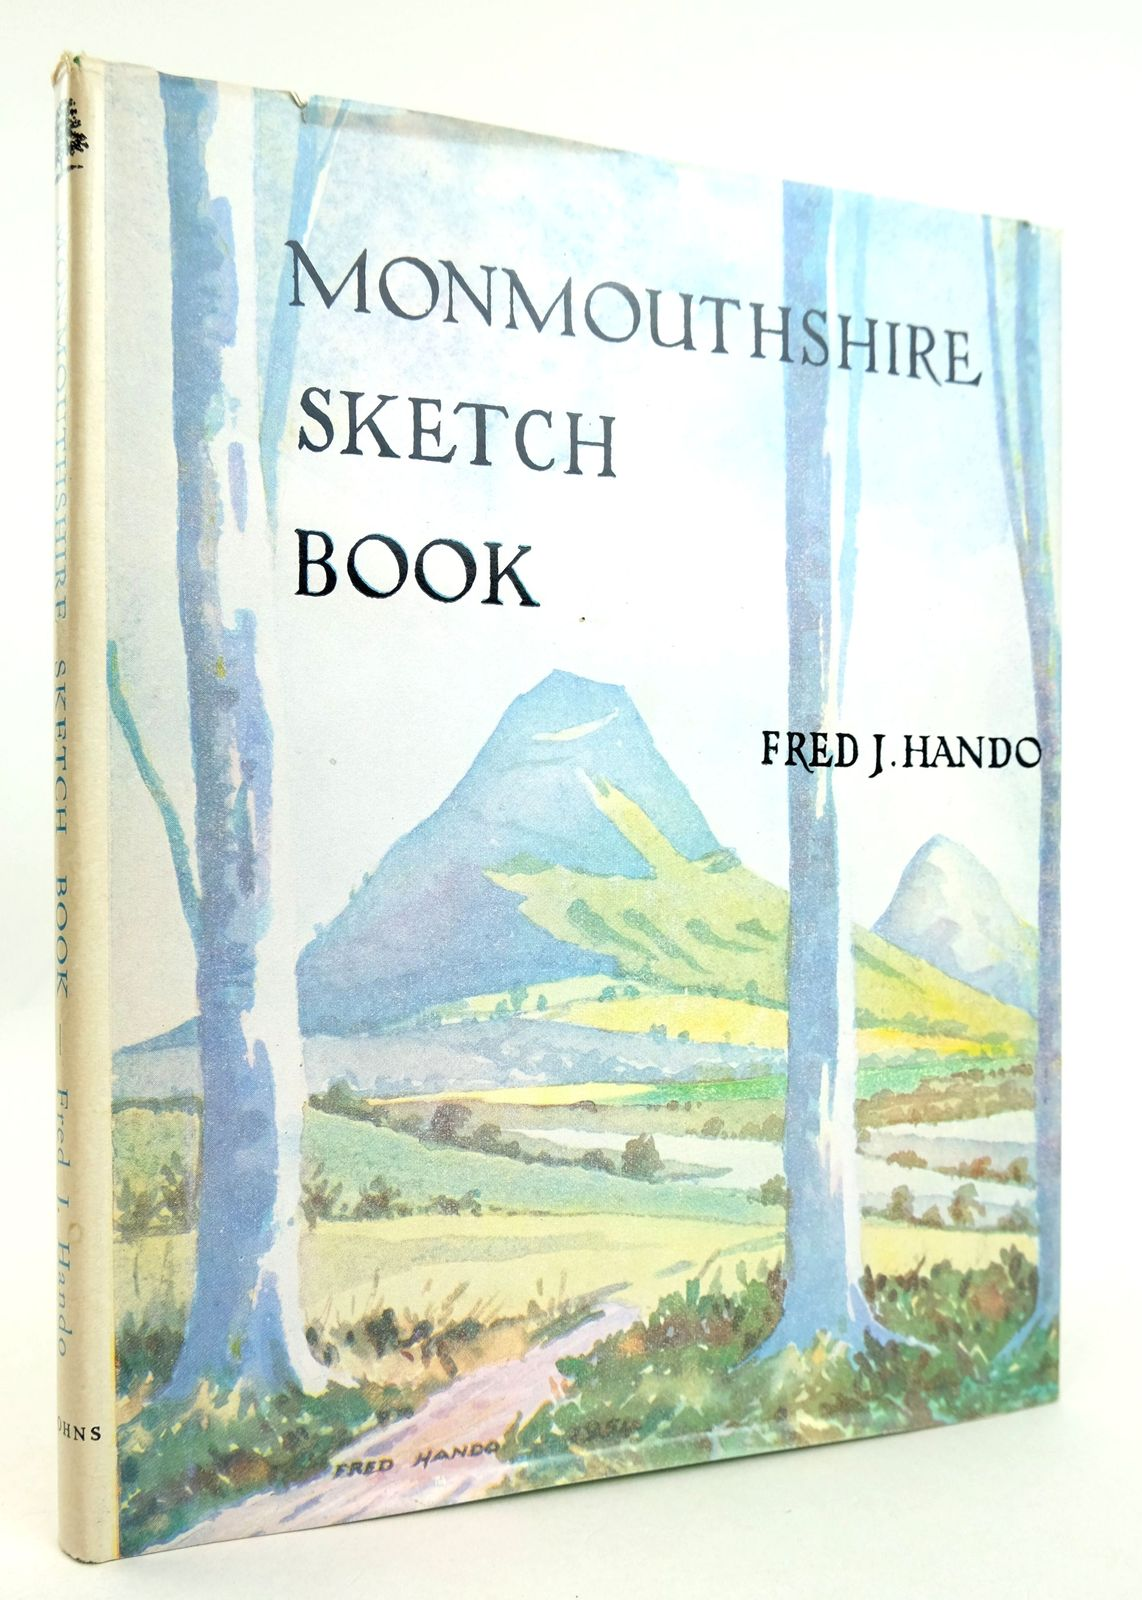 Photo of MONMOUTHSHIRE SKETCH BOOK written by Hando, Fred J. illustrated by Hando, Fred J. published by R.H. Johns Limited (STOCK CODE: 1819064)  for sale by Stella & Rose's Books